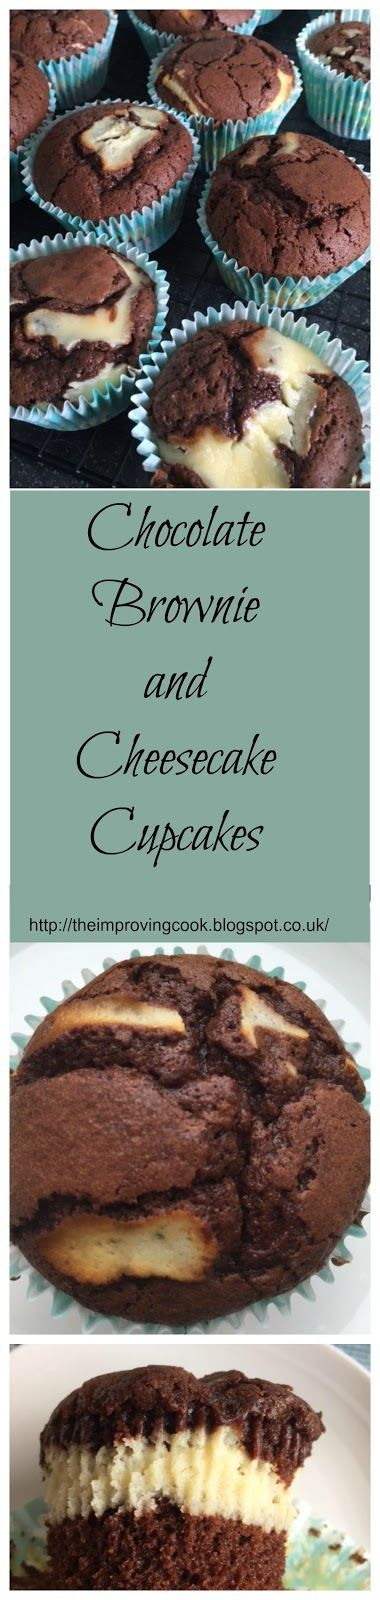 The Improving Cook: Chocolate Brownie and Cheesecake Cupcakes- rich chocolate sponge layered with cheesecake. Delicious for children's parties or afternoon tea